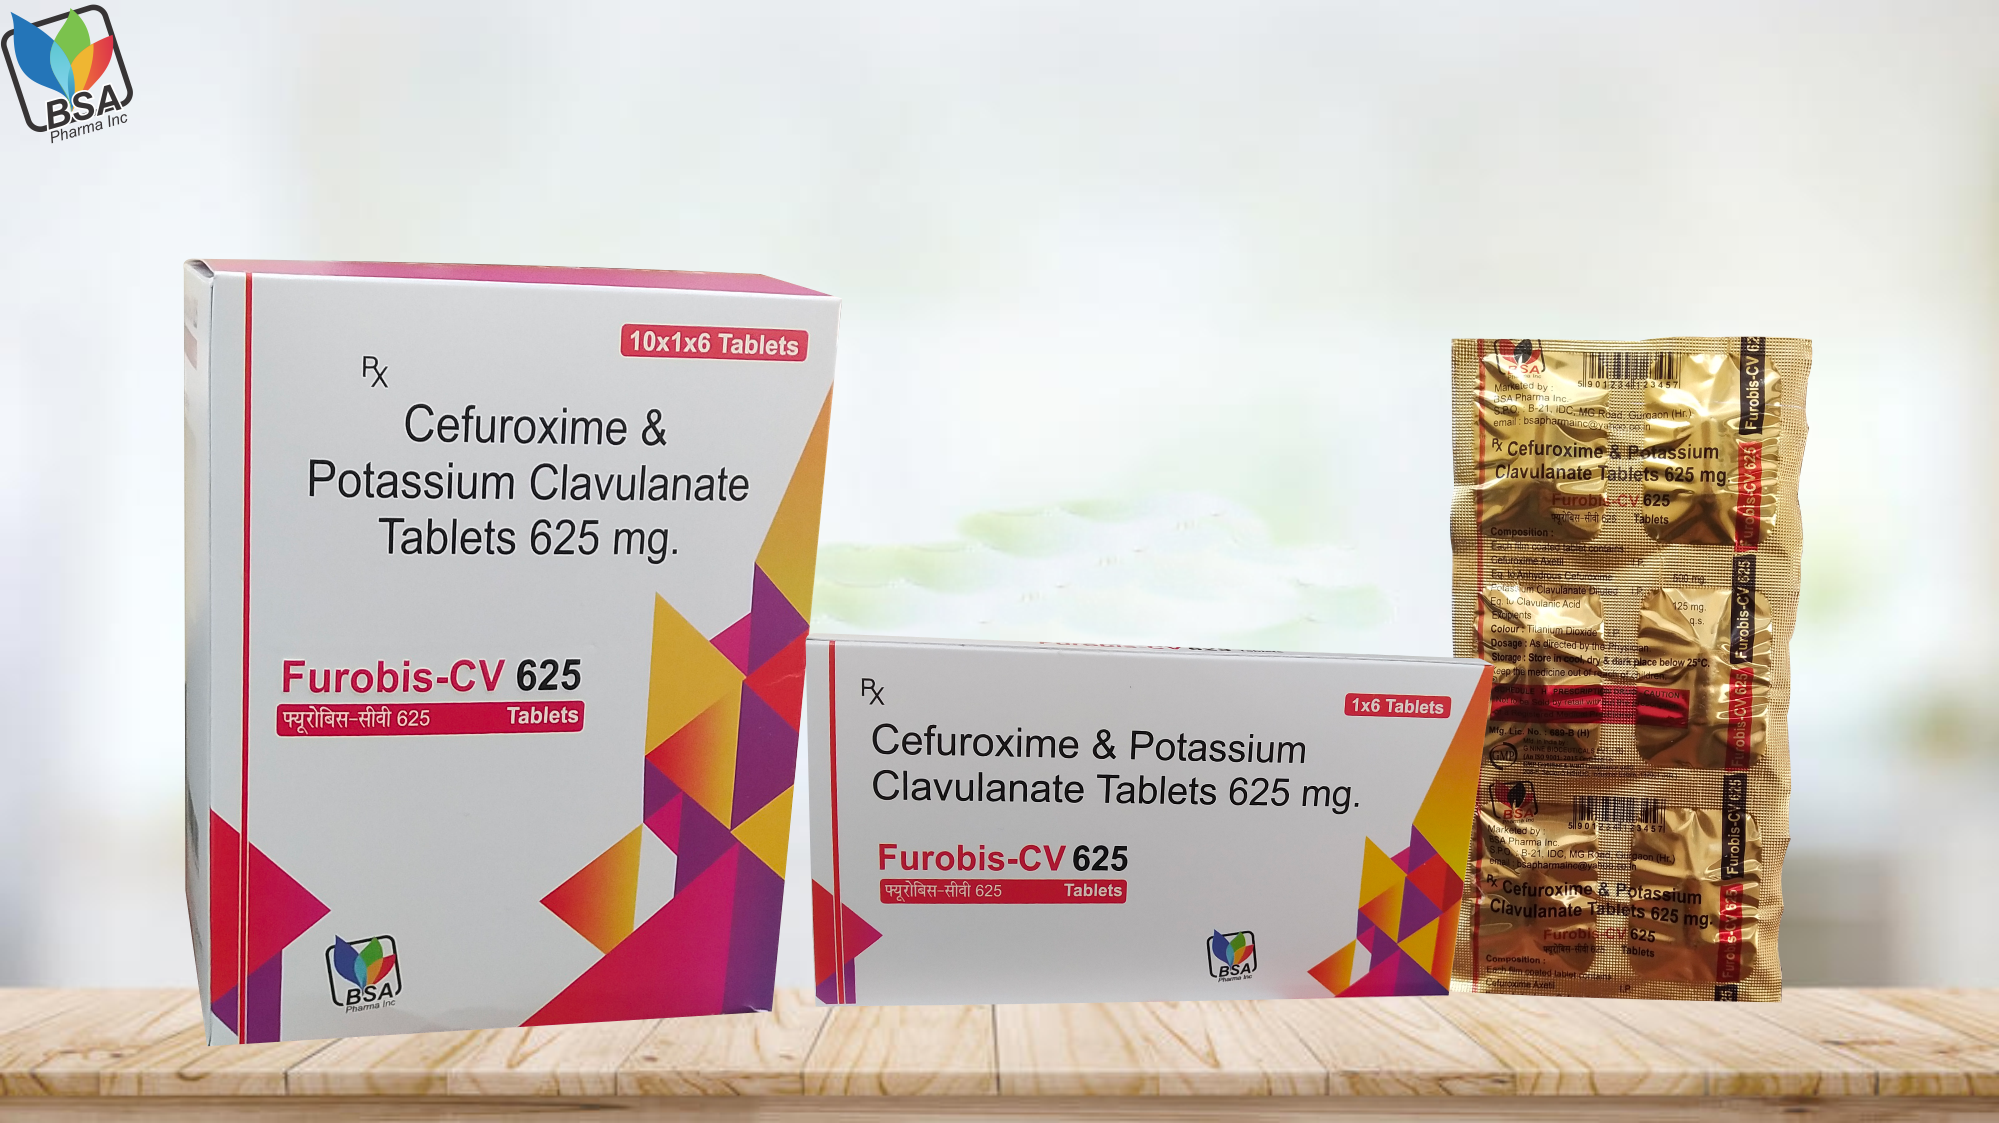 Cefuroxime Axetil Potassium Clavulanate 625mg tablets